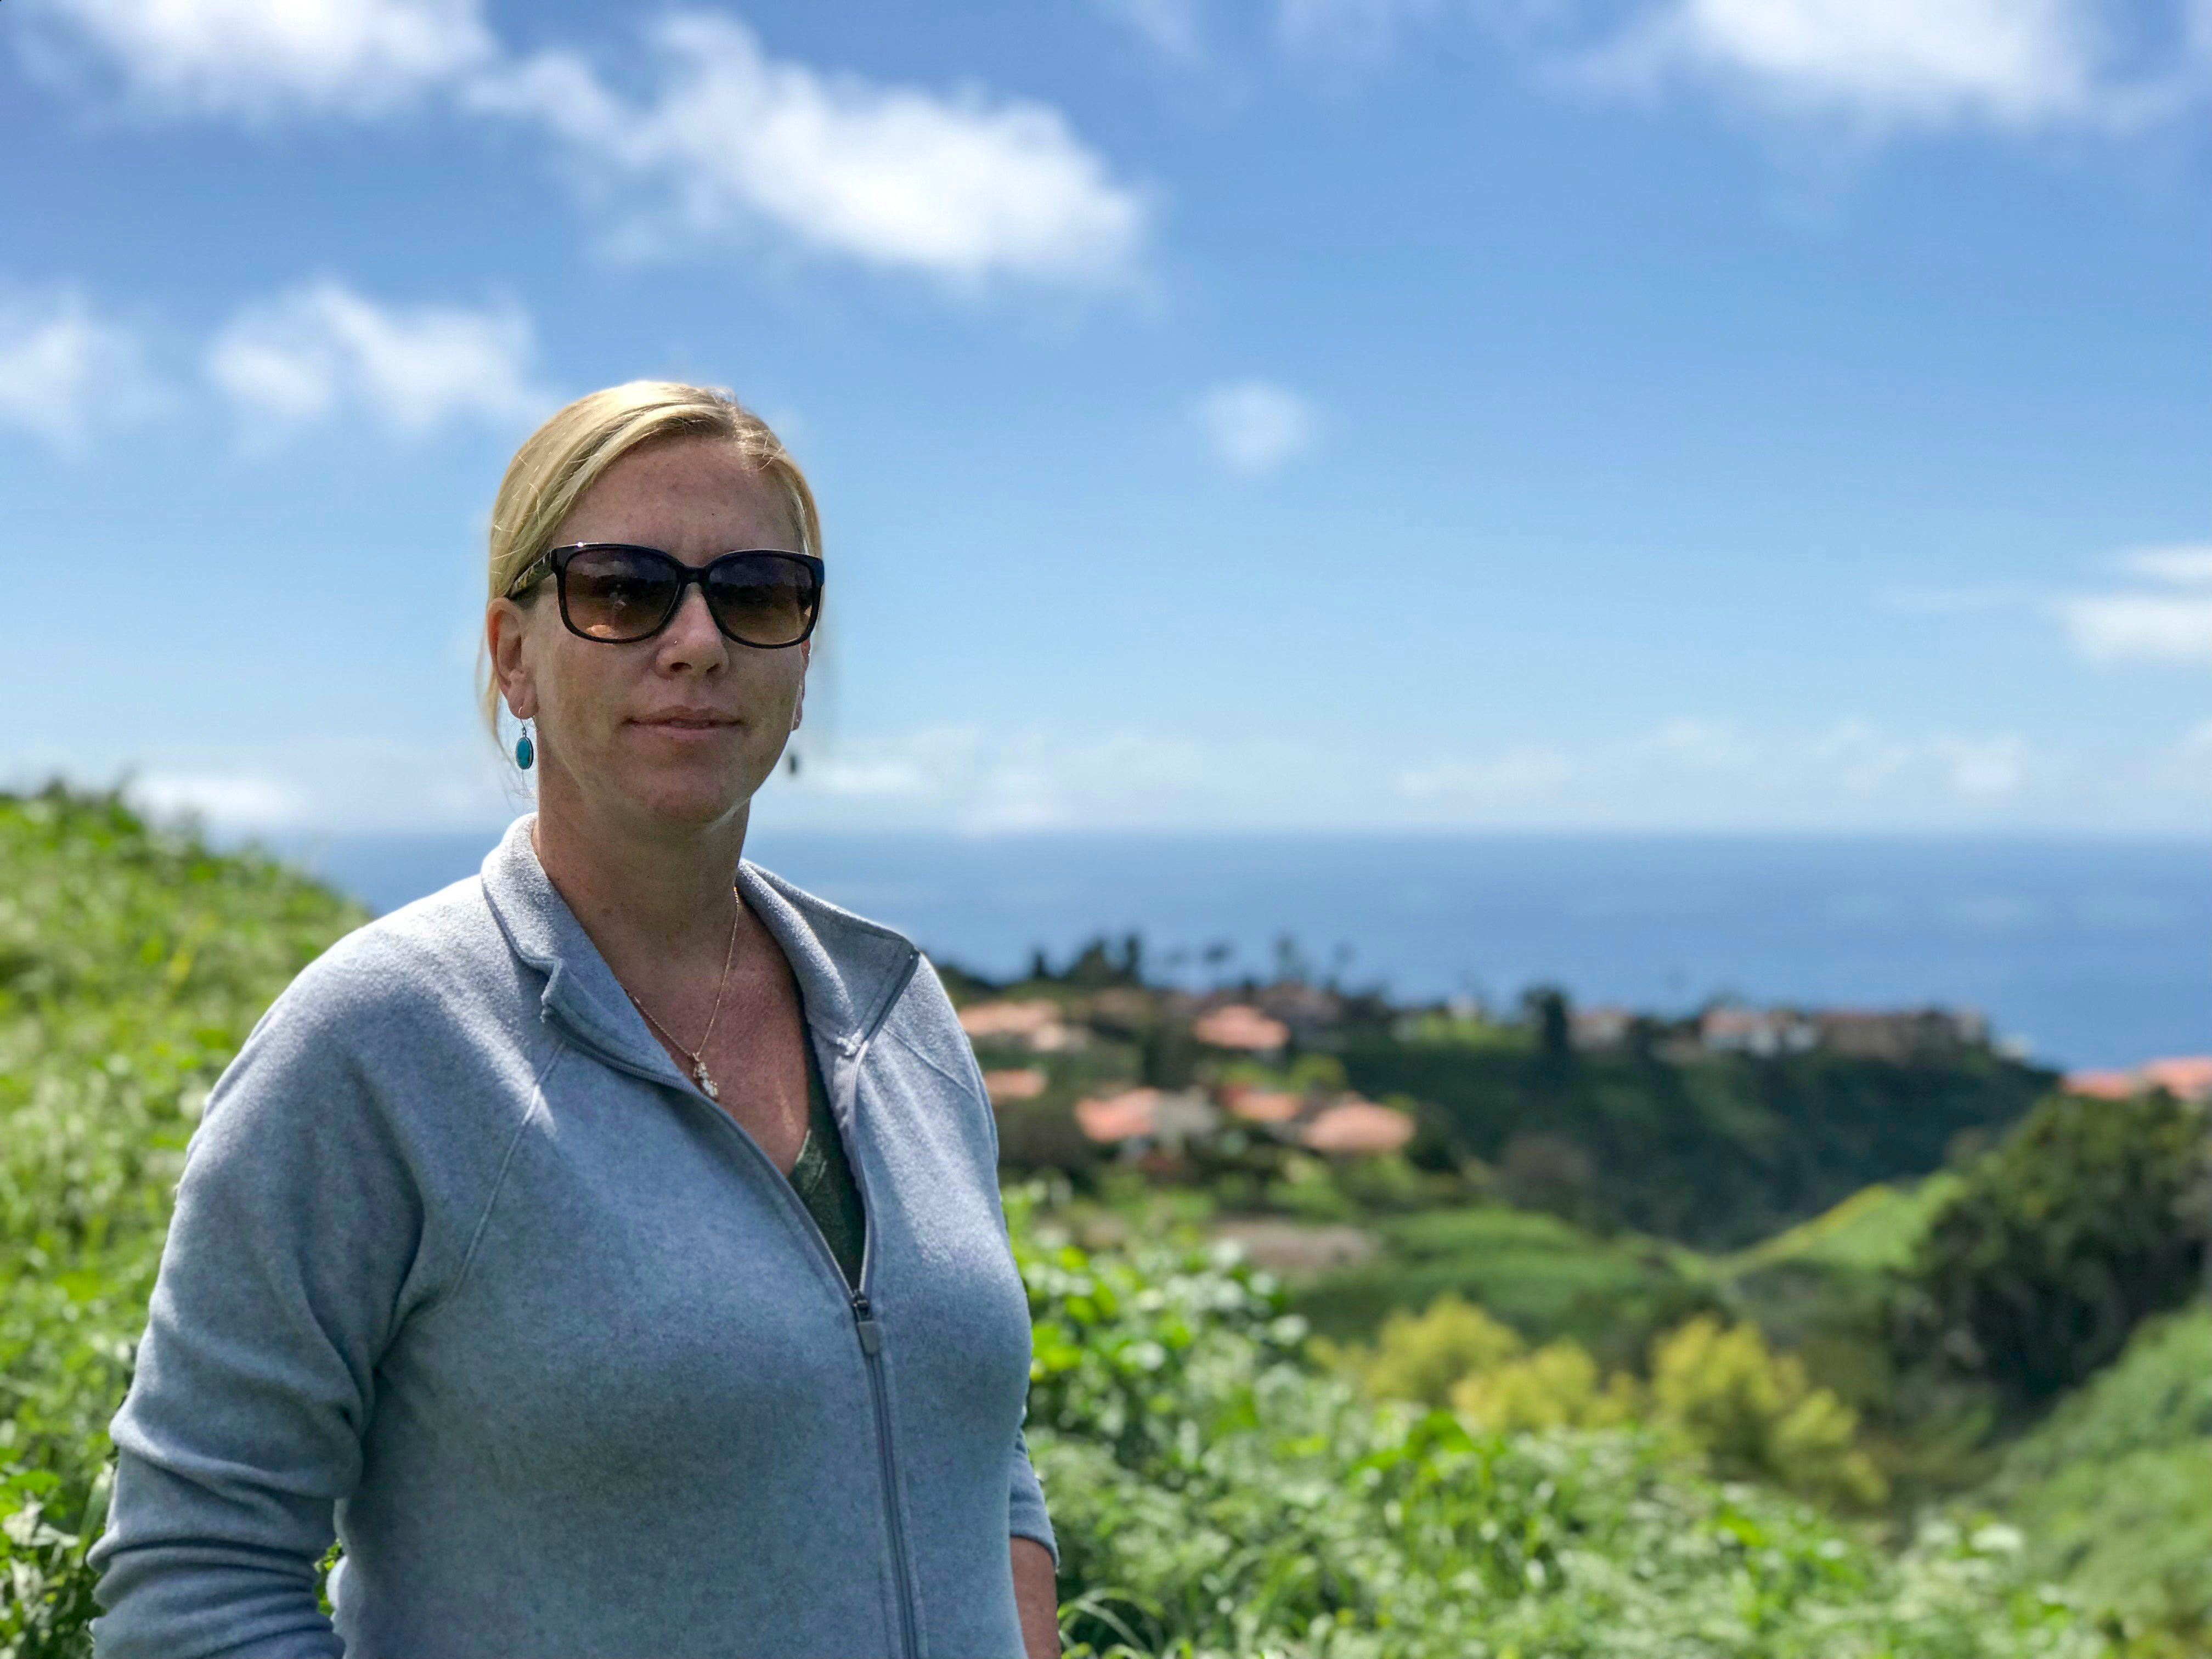 Adrienne Mohan, the executive director of the Palos Verdes Peninsula Land Conservancy, stands above acreage her organization maintains in Rancho Palos Verdes.